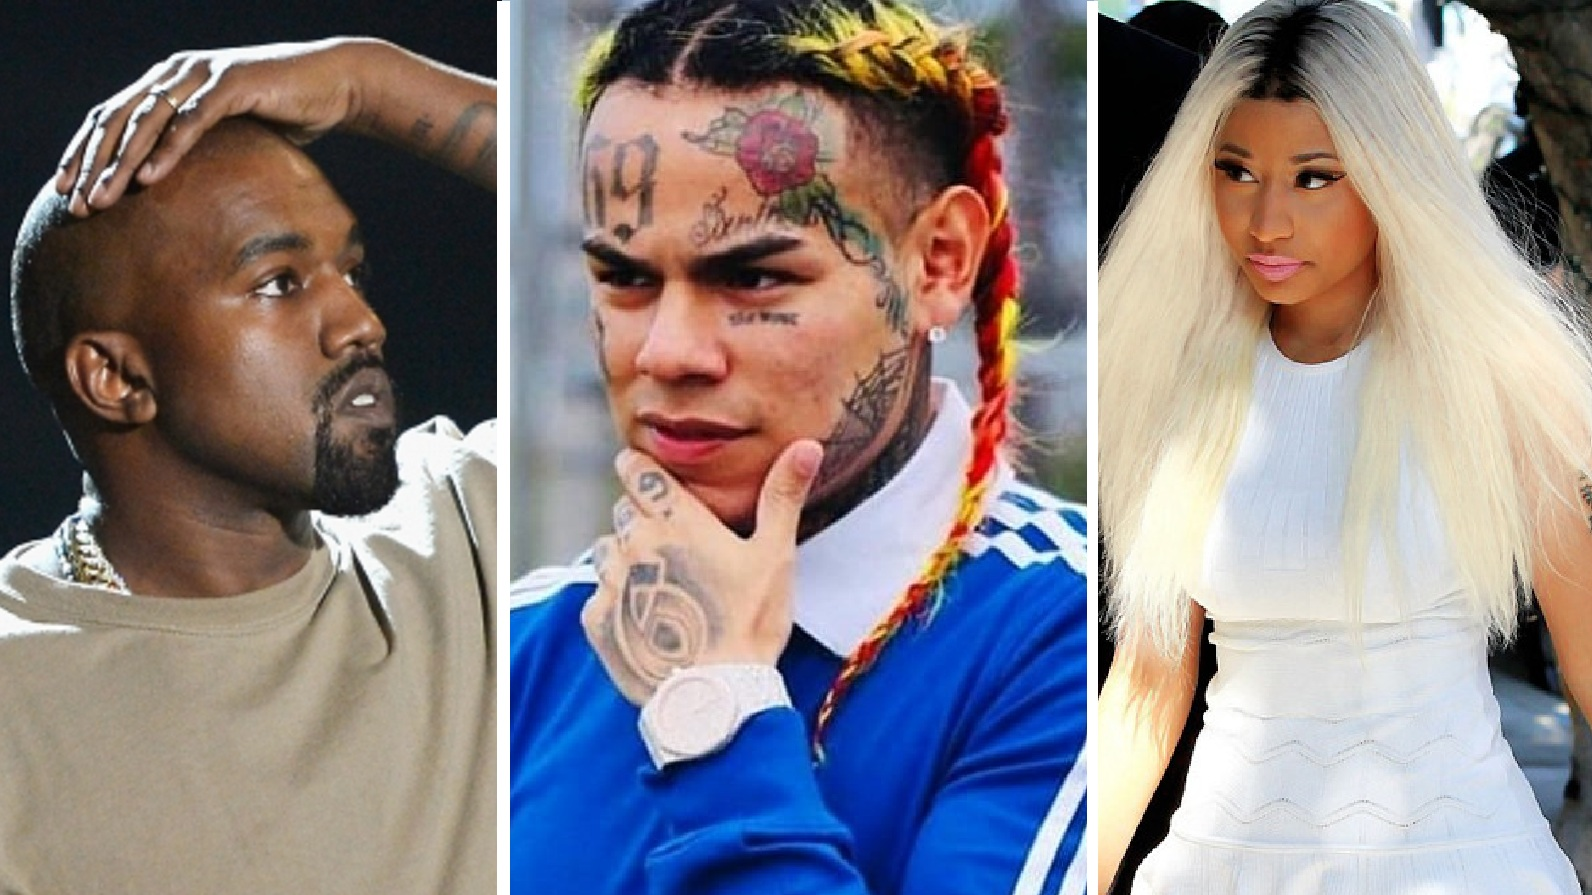 Gunshots Fired At Tekashi 6ix9ine, Kanye West, Nicki Minaj Music Video Shoot